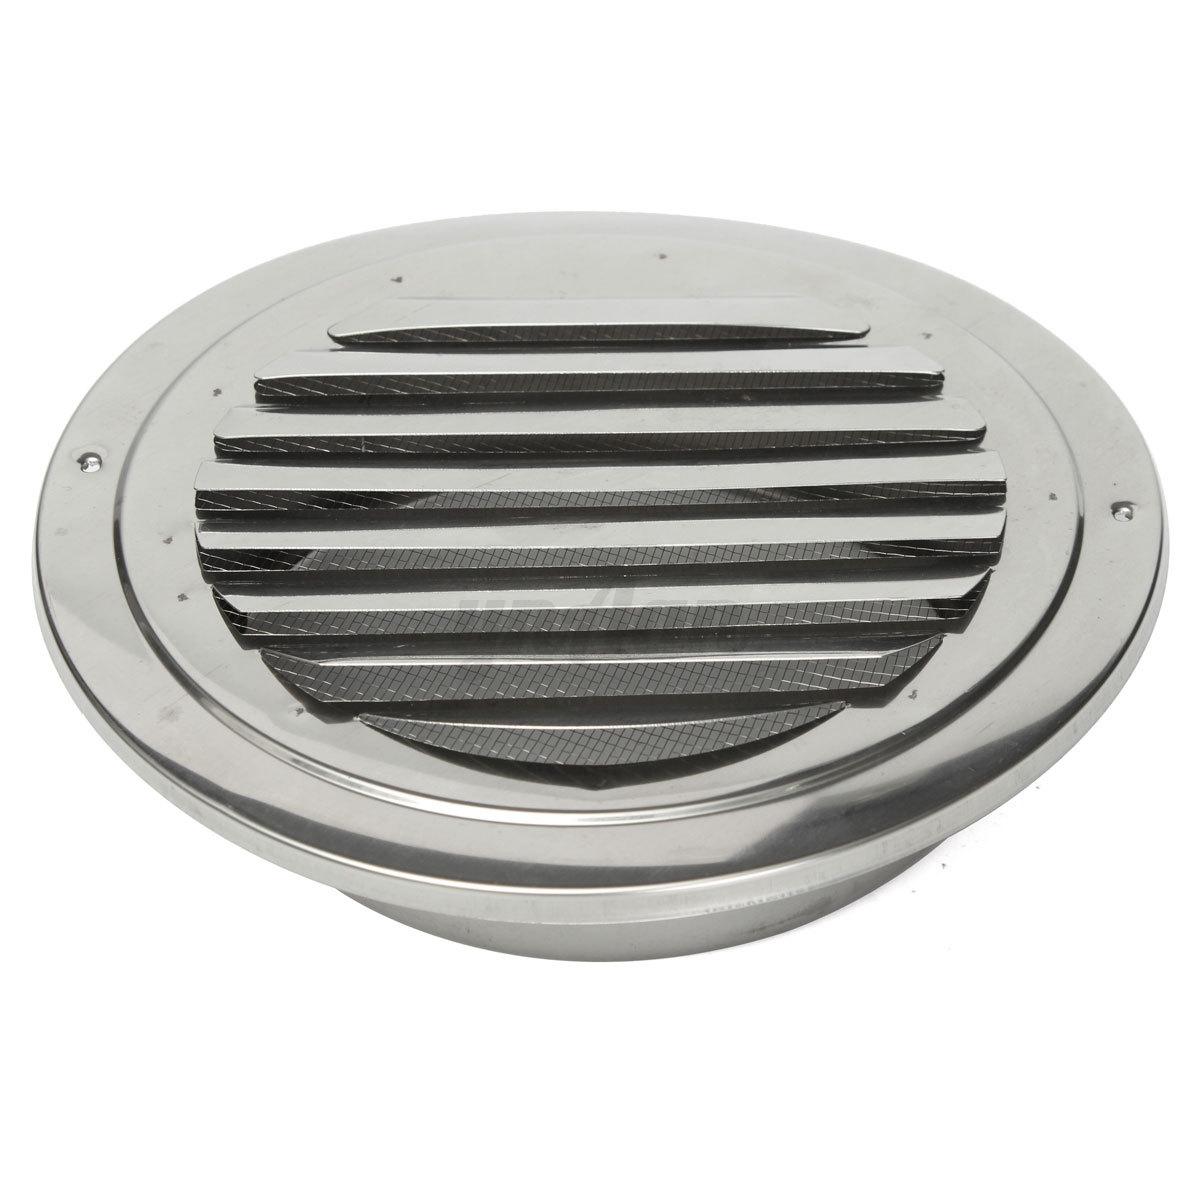 Vent box in the wall using metal ducting photo credit in o vate - Stainless Steel Wall Air Vent Grille Round Cover